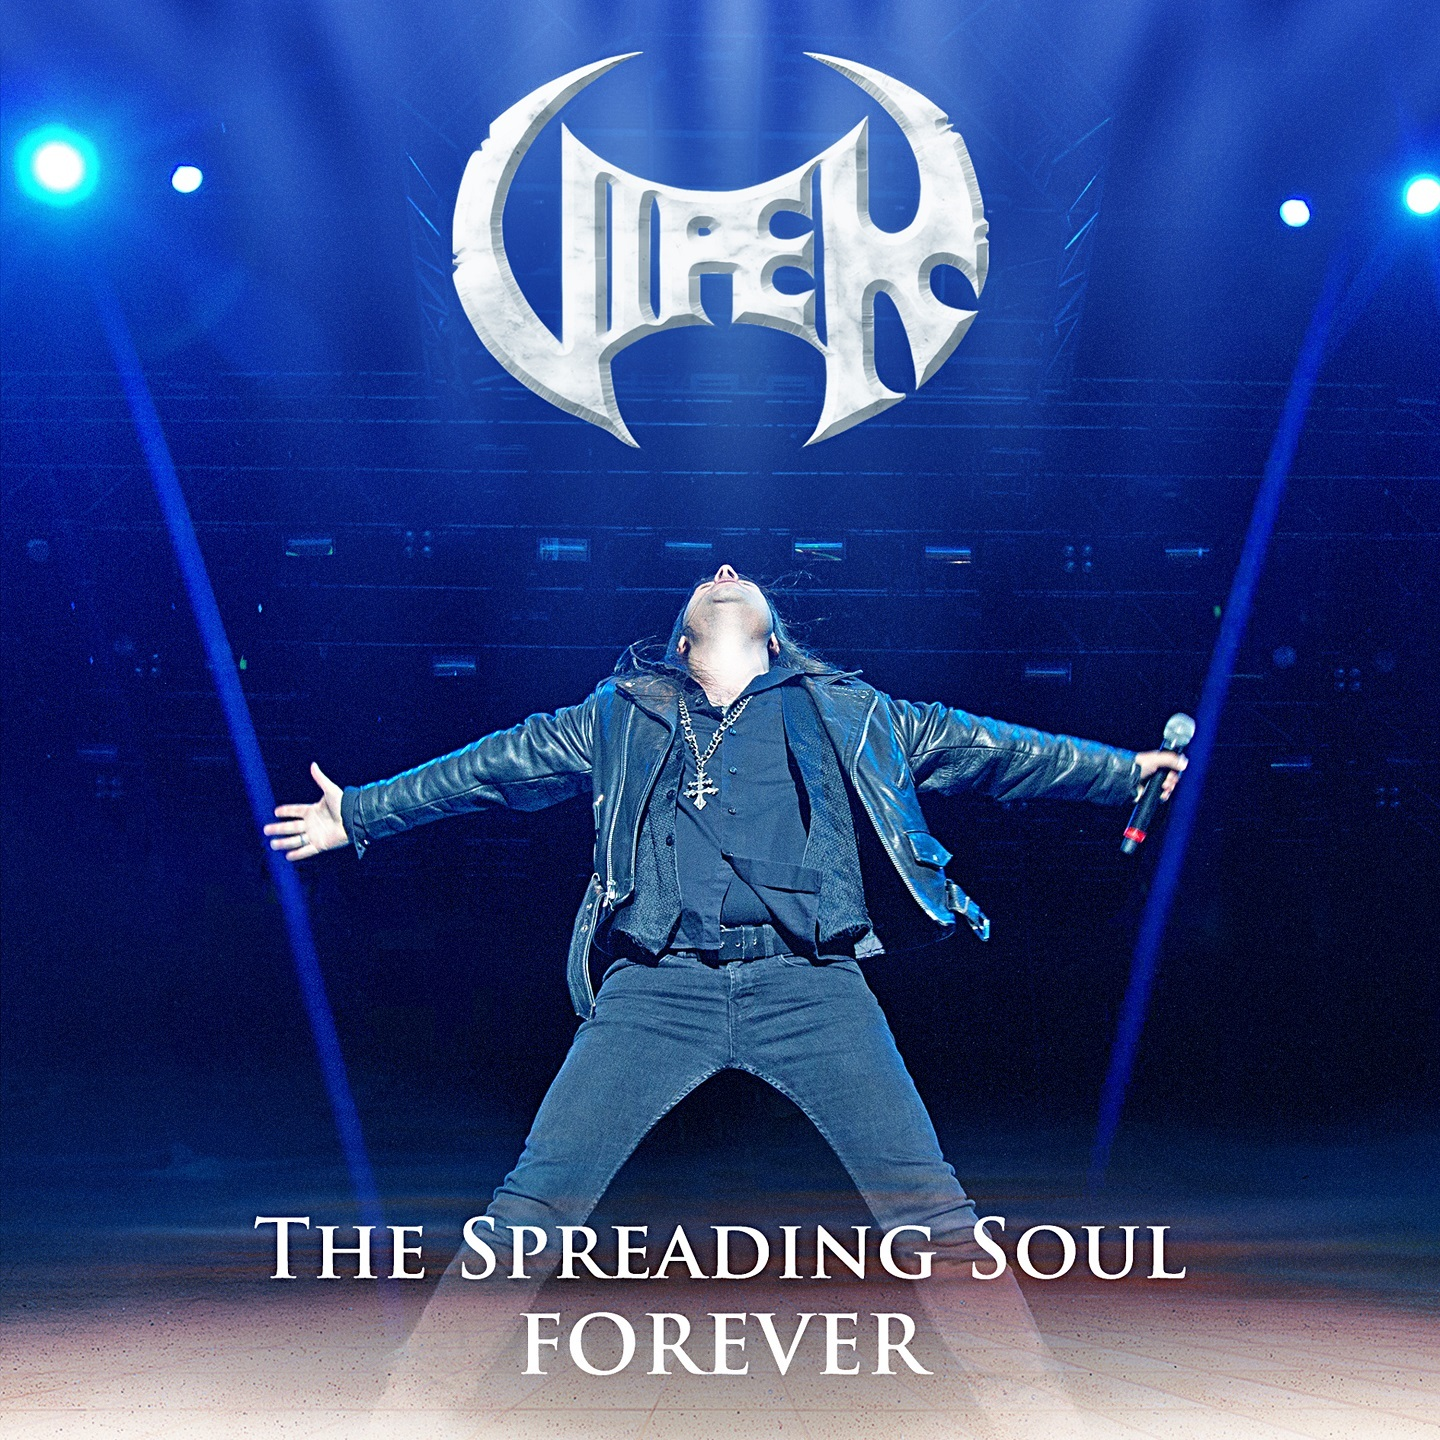 Viper - The Spreading Soul Forever